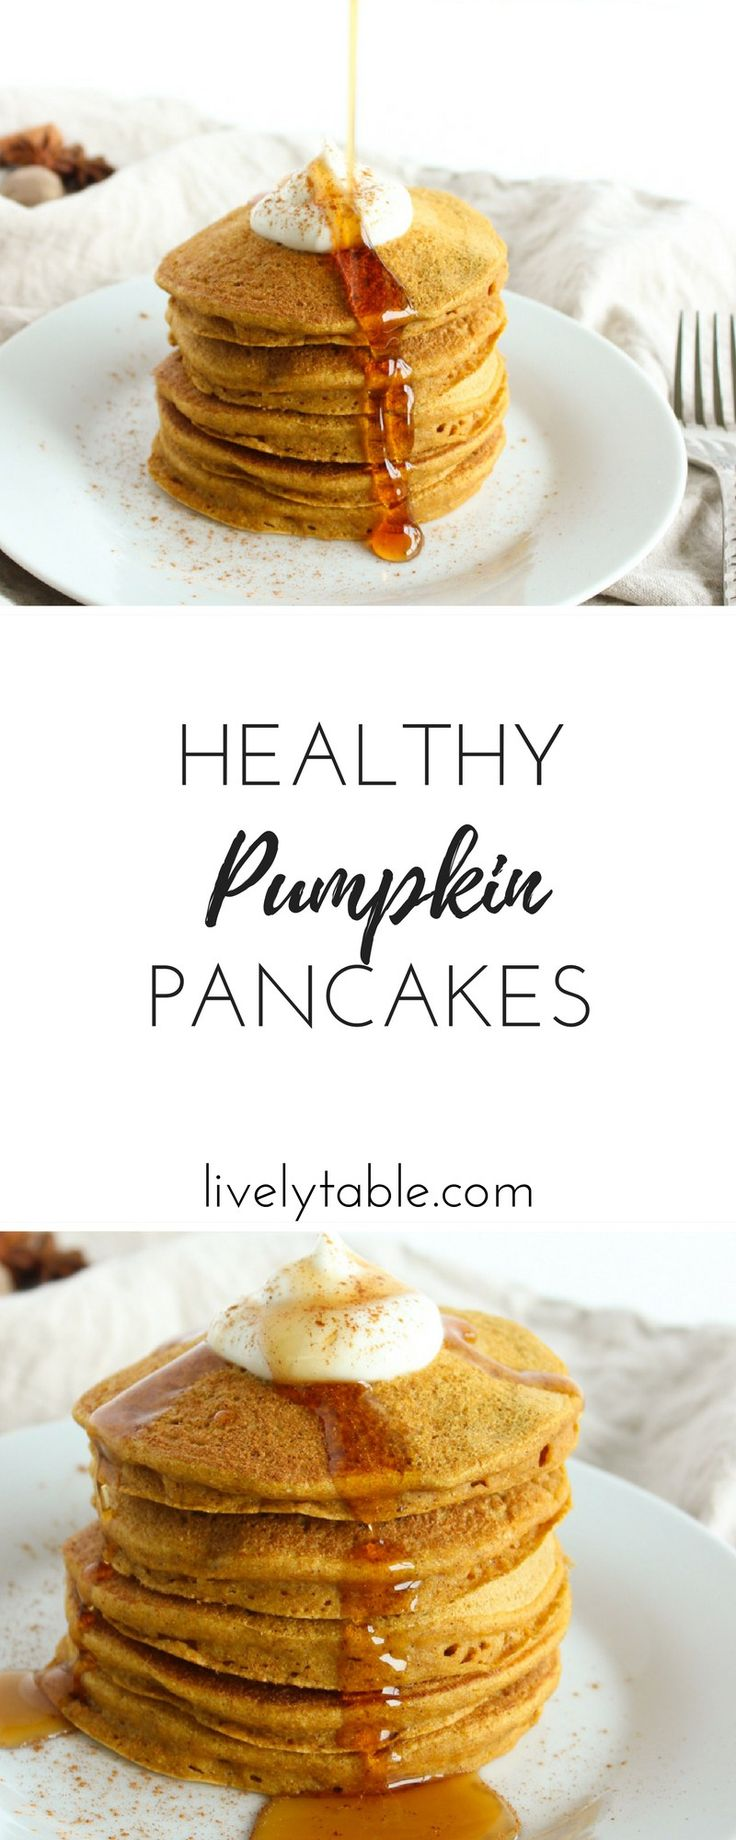 Healthy pumpkin pancakes are the perfect cozy fall breakfast or brunch! Made with whole grains, no added sugar and a gluten-free option! Via livelytable.com